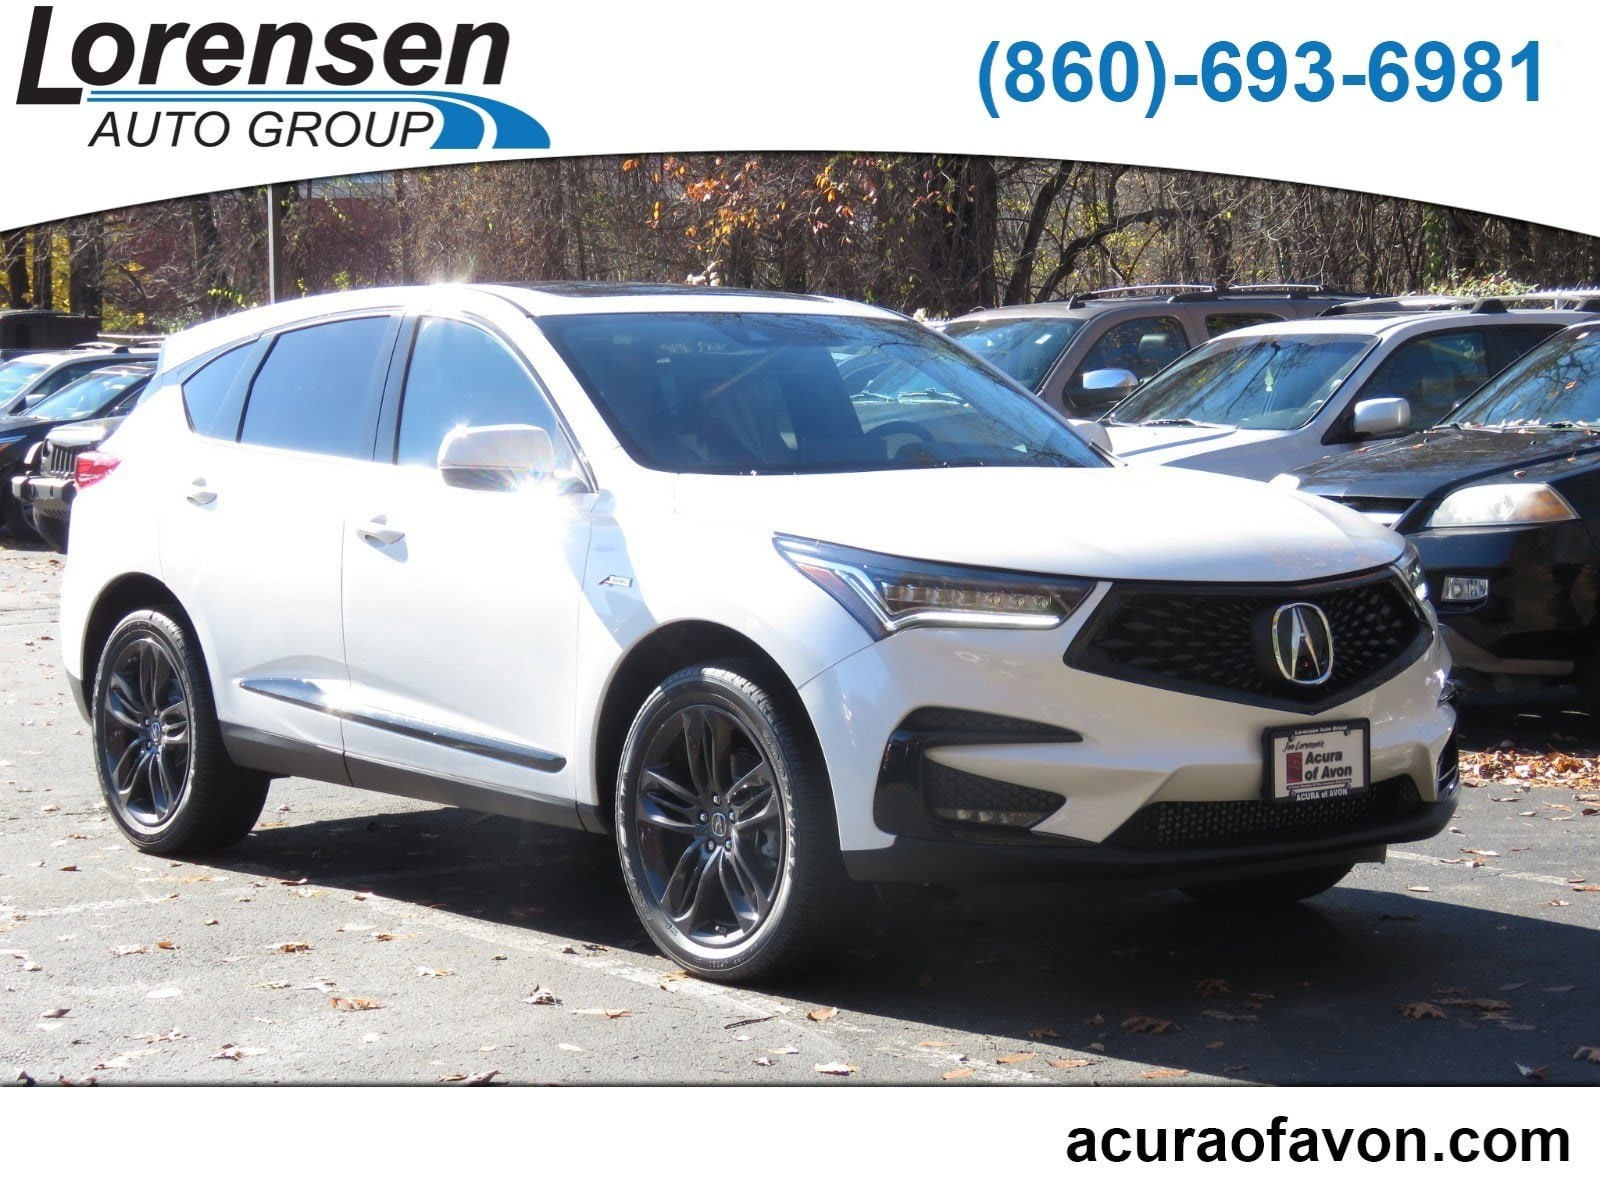 Acura Lease Awesome 59 Awesome 2019 Acura Lease